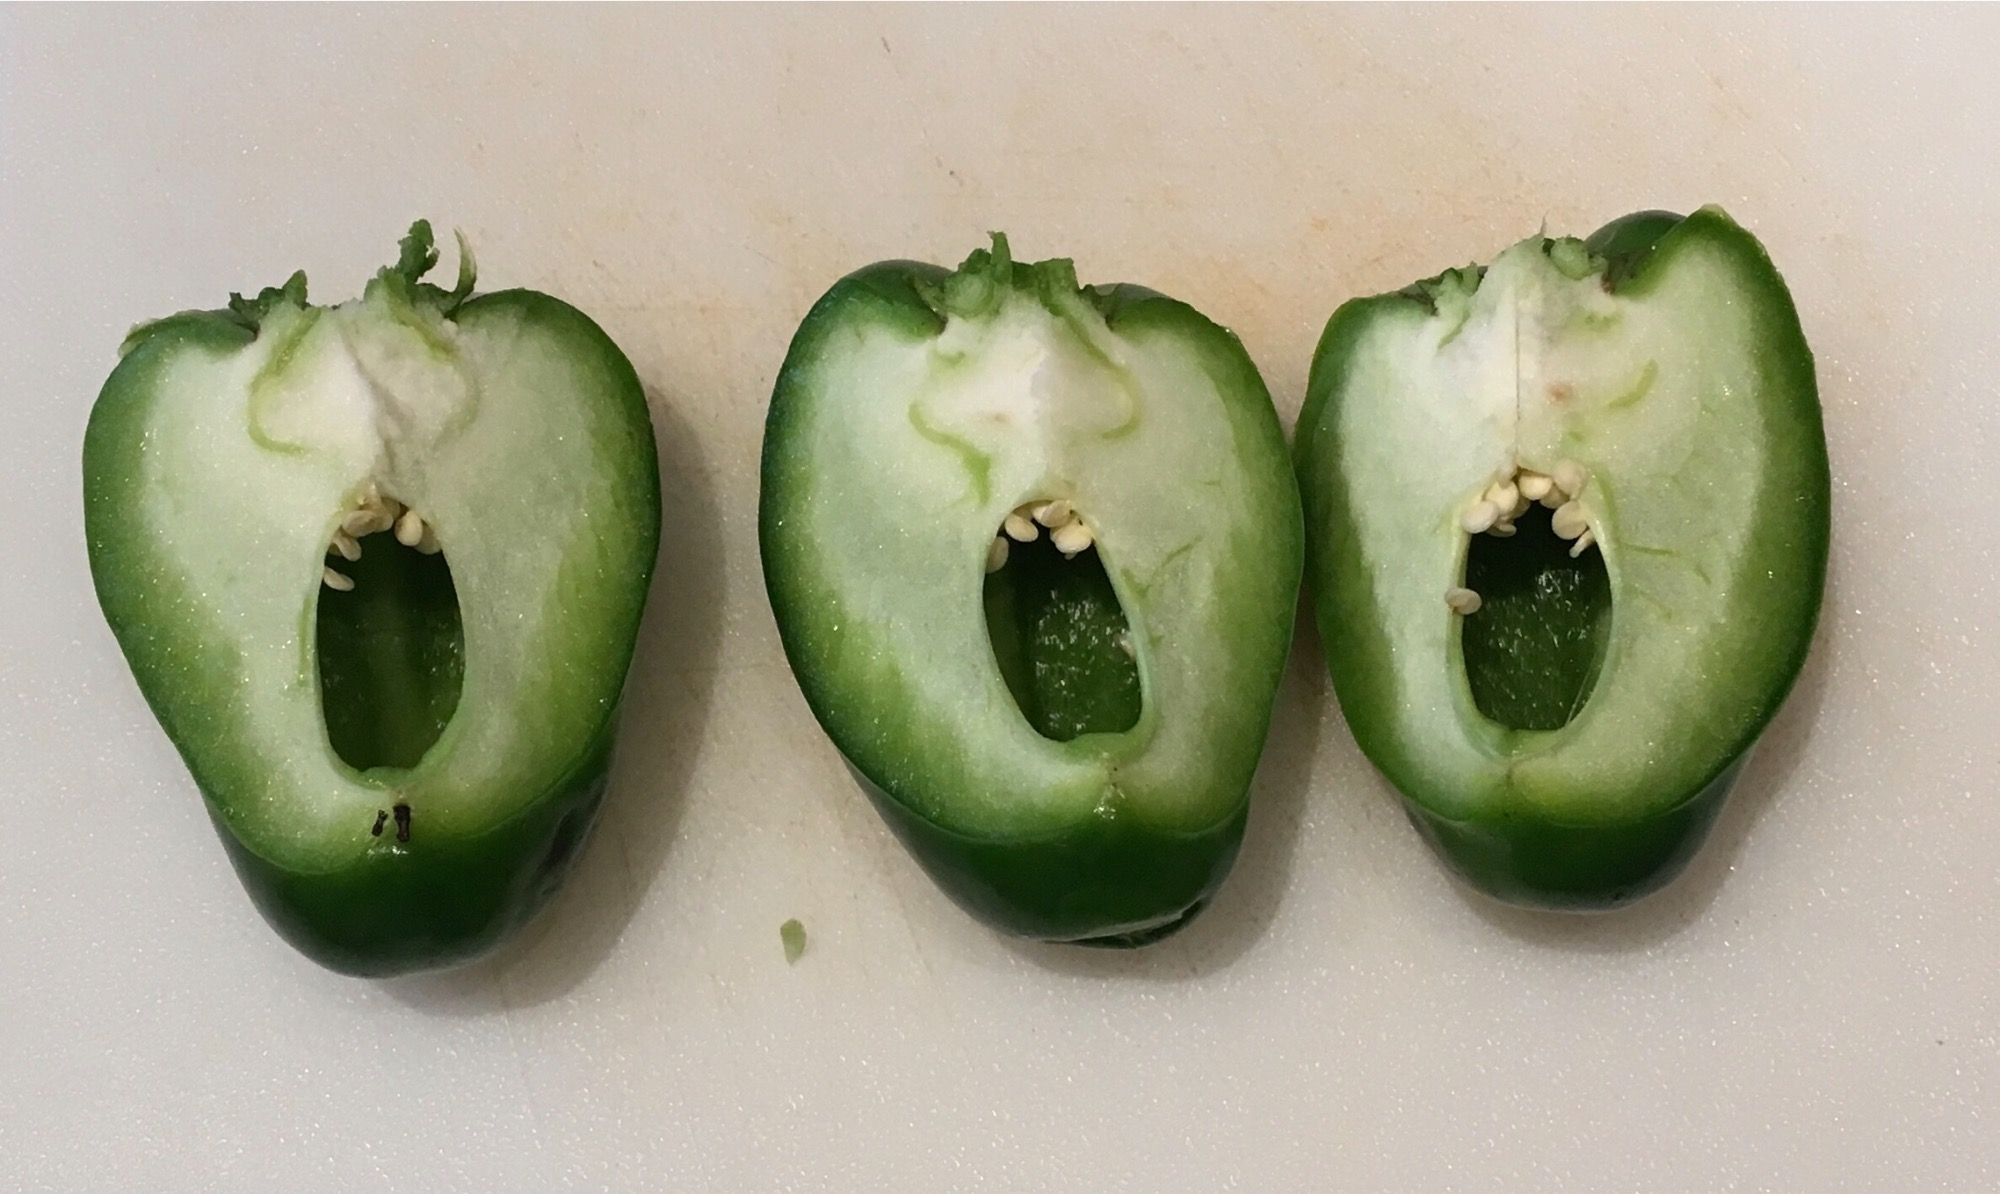 A green bell pepper cut in thirds from north to south pole. The gaps and the seeds make it look like three singing mouths